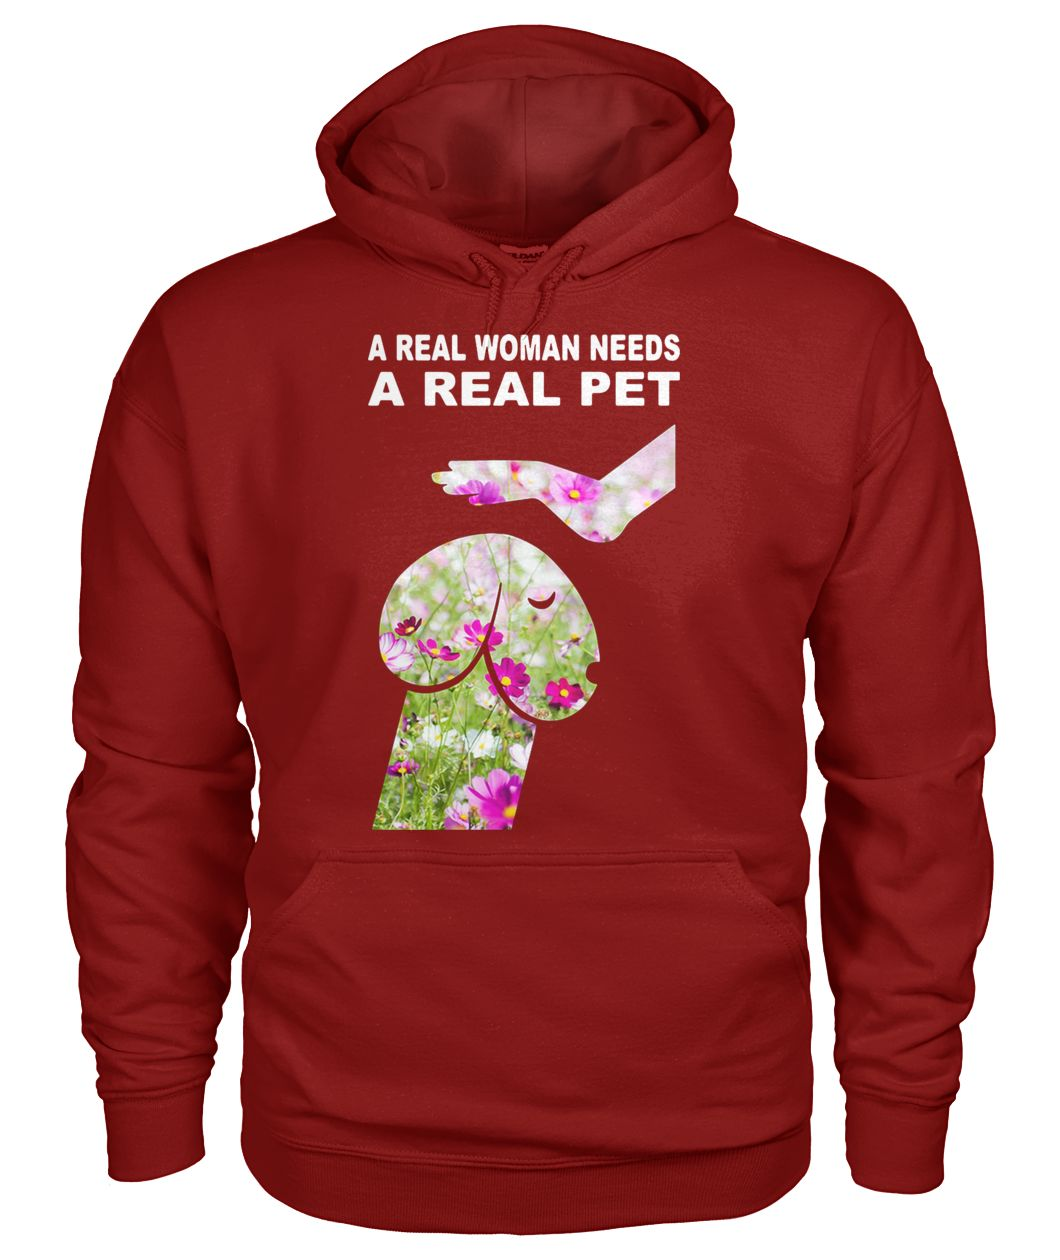 Cosmos seeds dickhead dog noma bar a real woman needs a real pet gildan hoodie